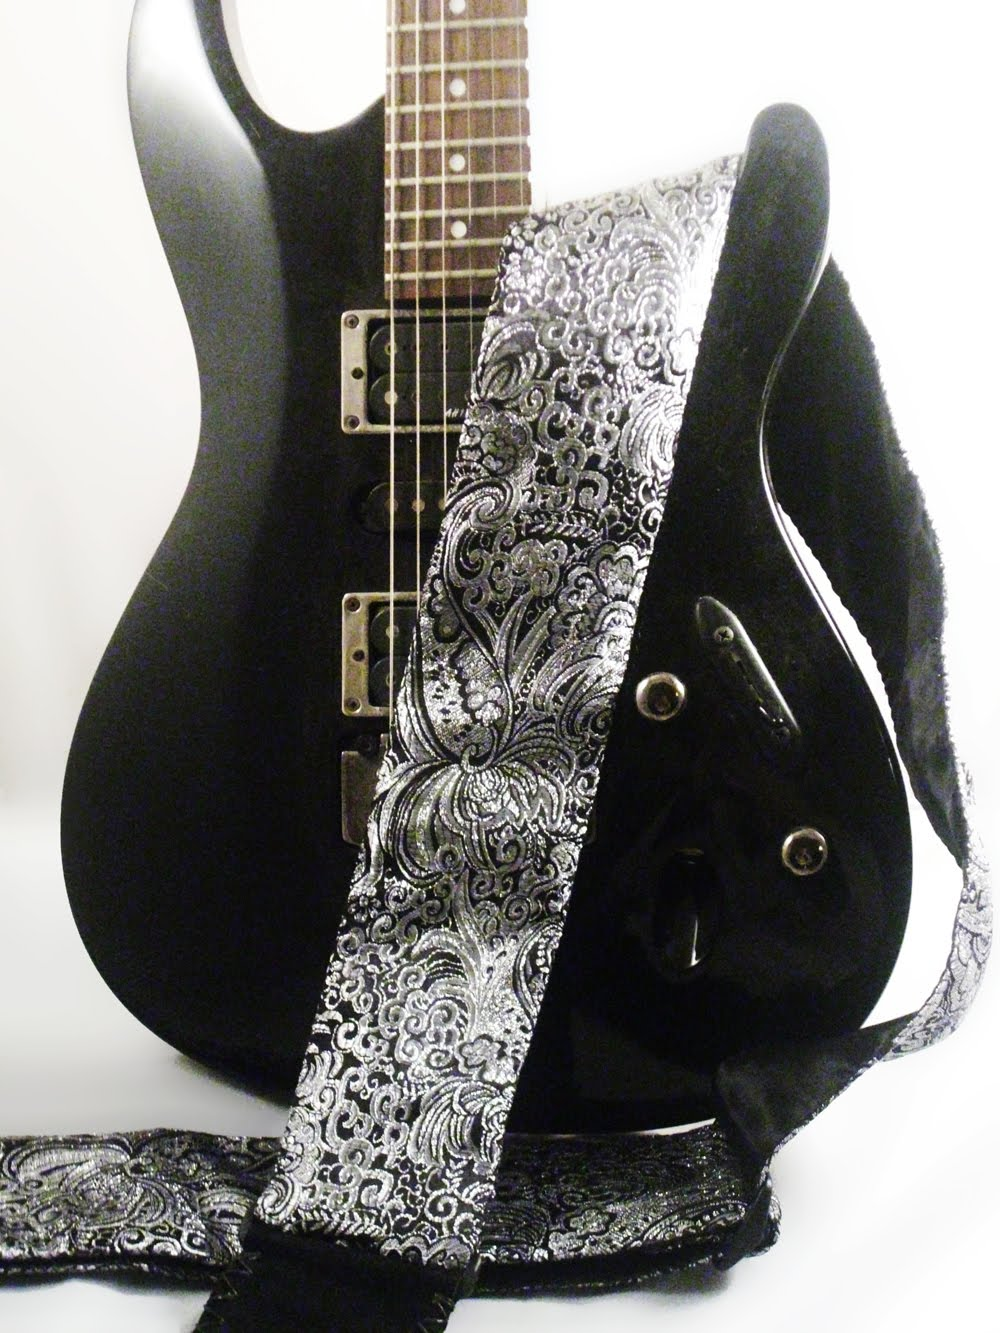 cool straps custom handmade guitar straps stepping outside the stage image box. Black Bedroom Furniture Sets. Home Design Ideas